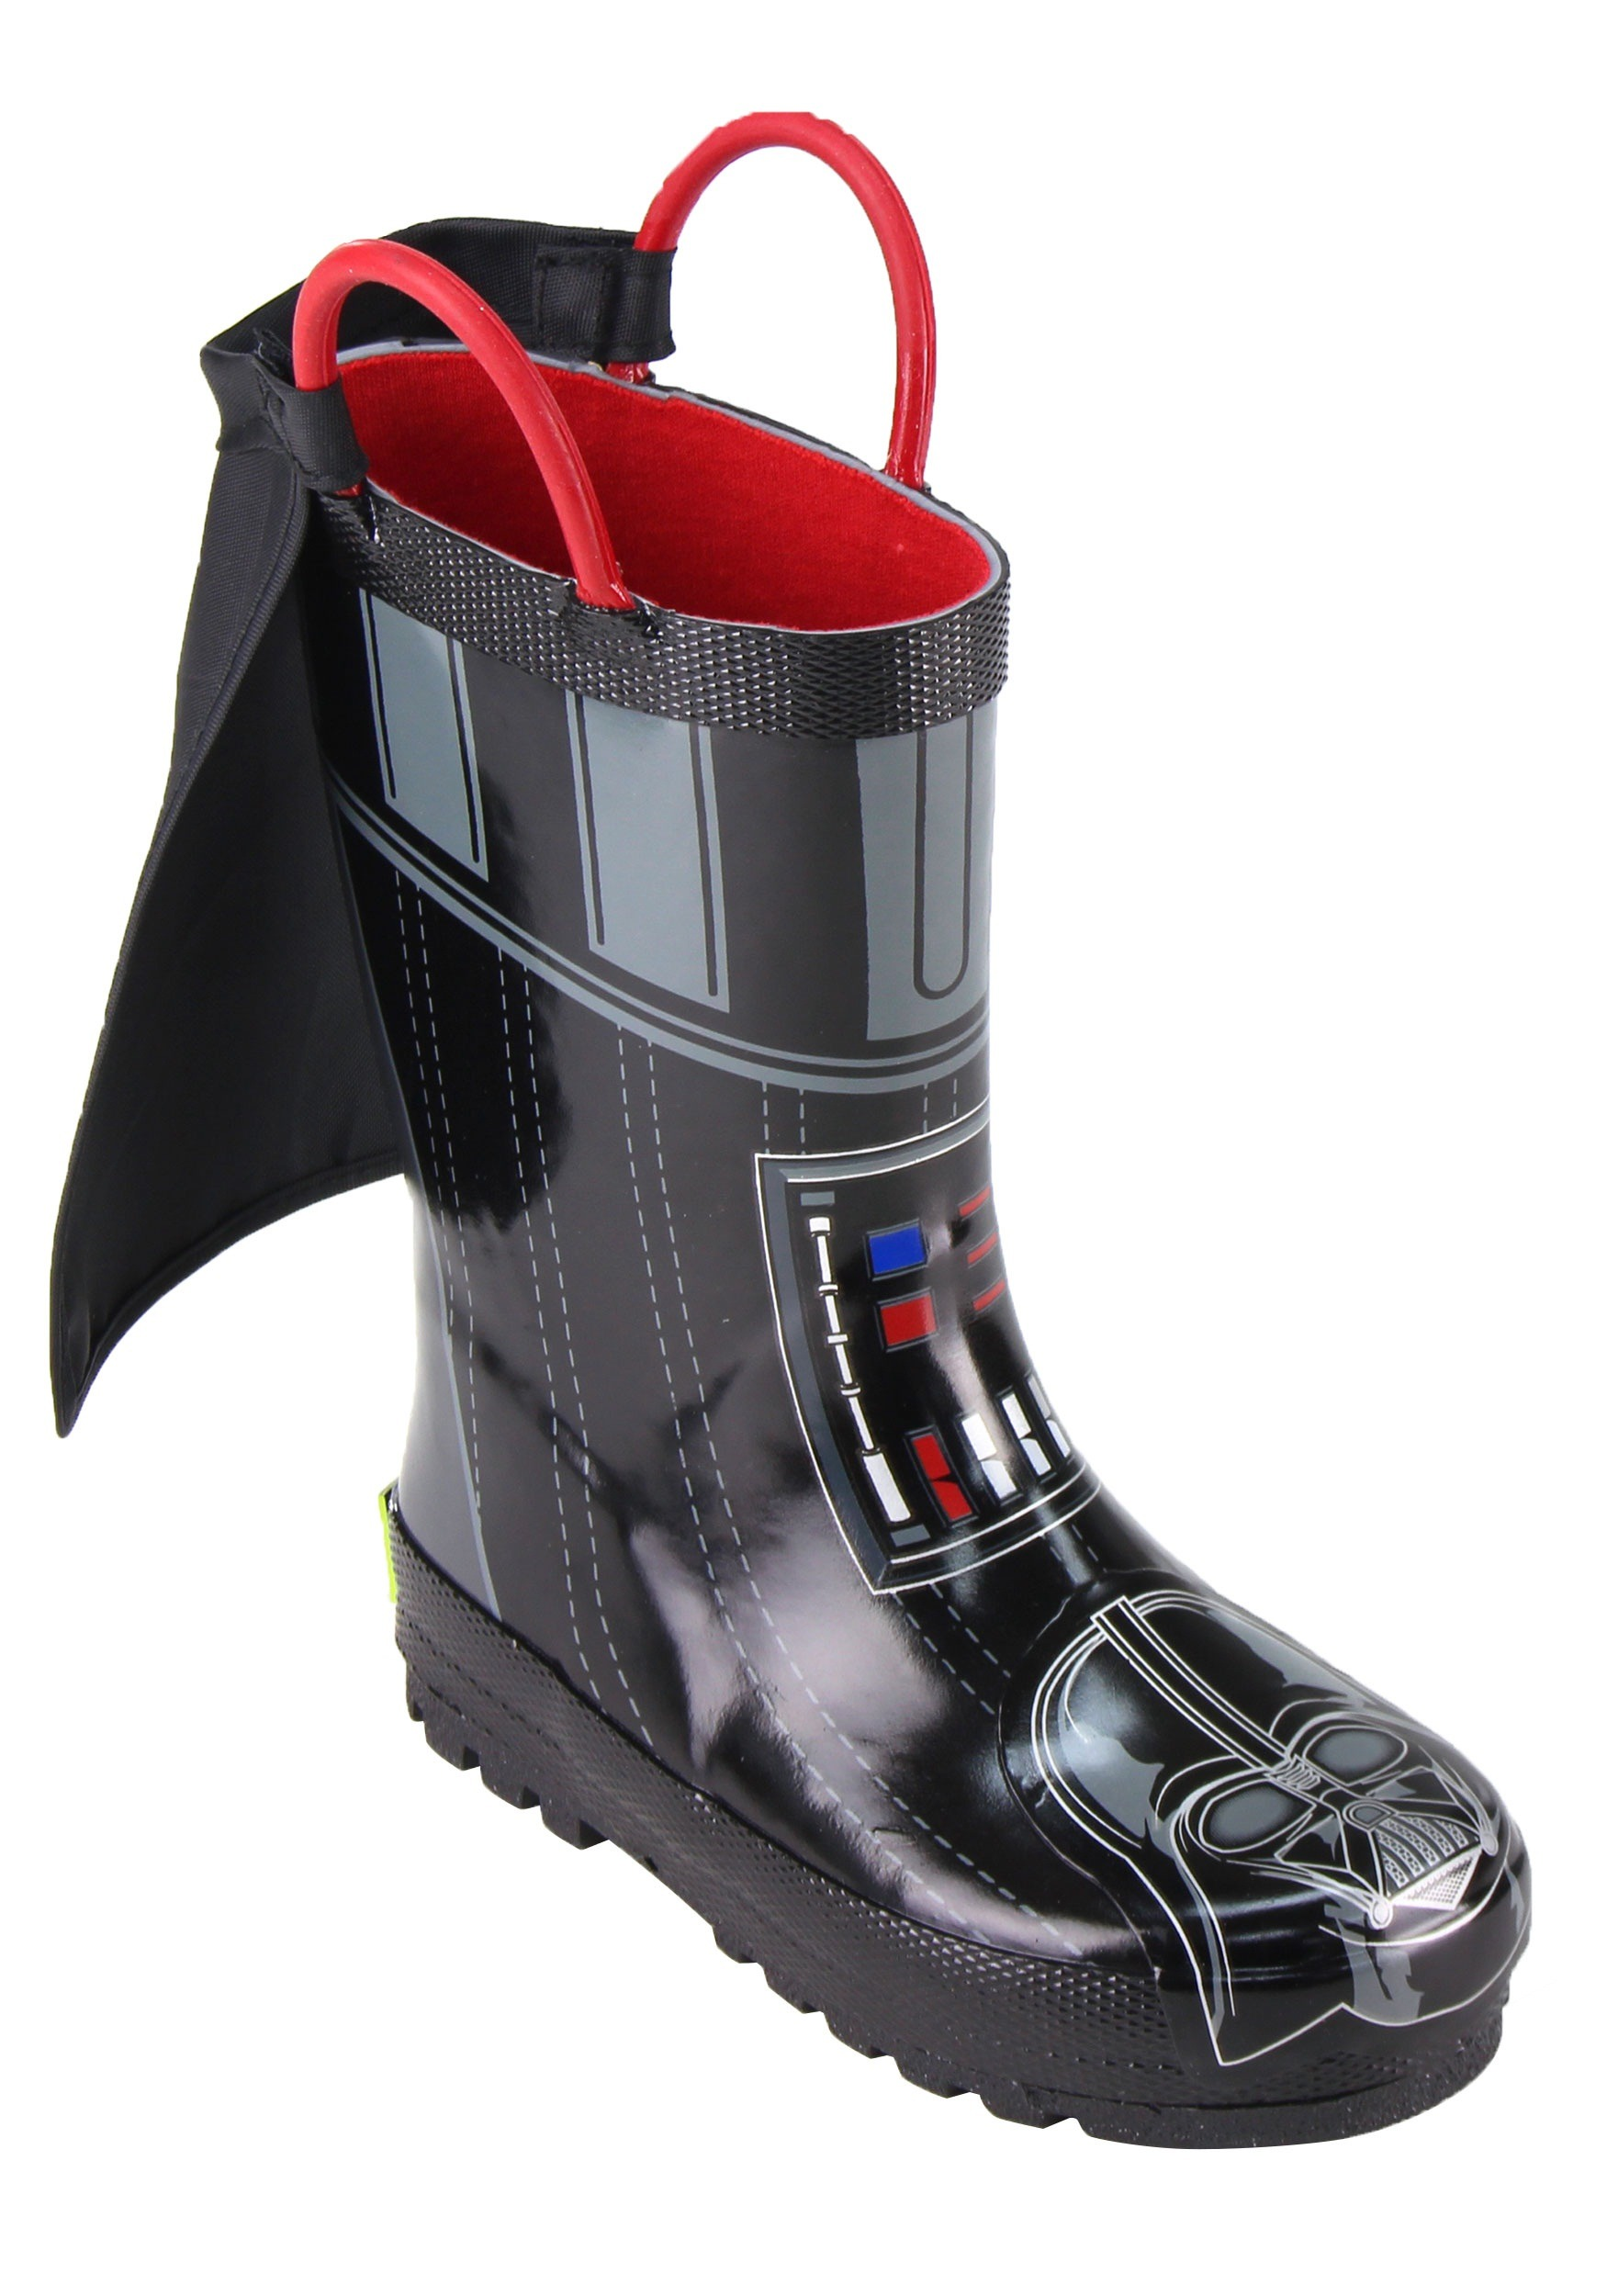 Star Wars Darth Vader Rain Boots for Kids